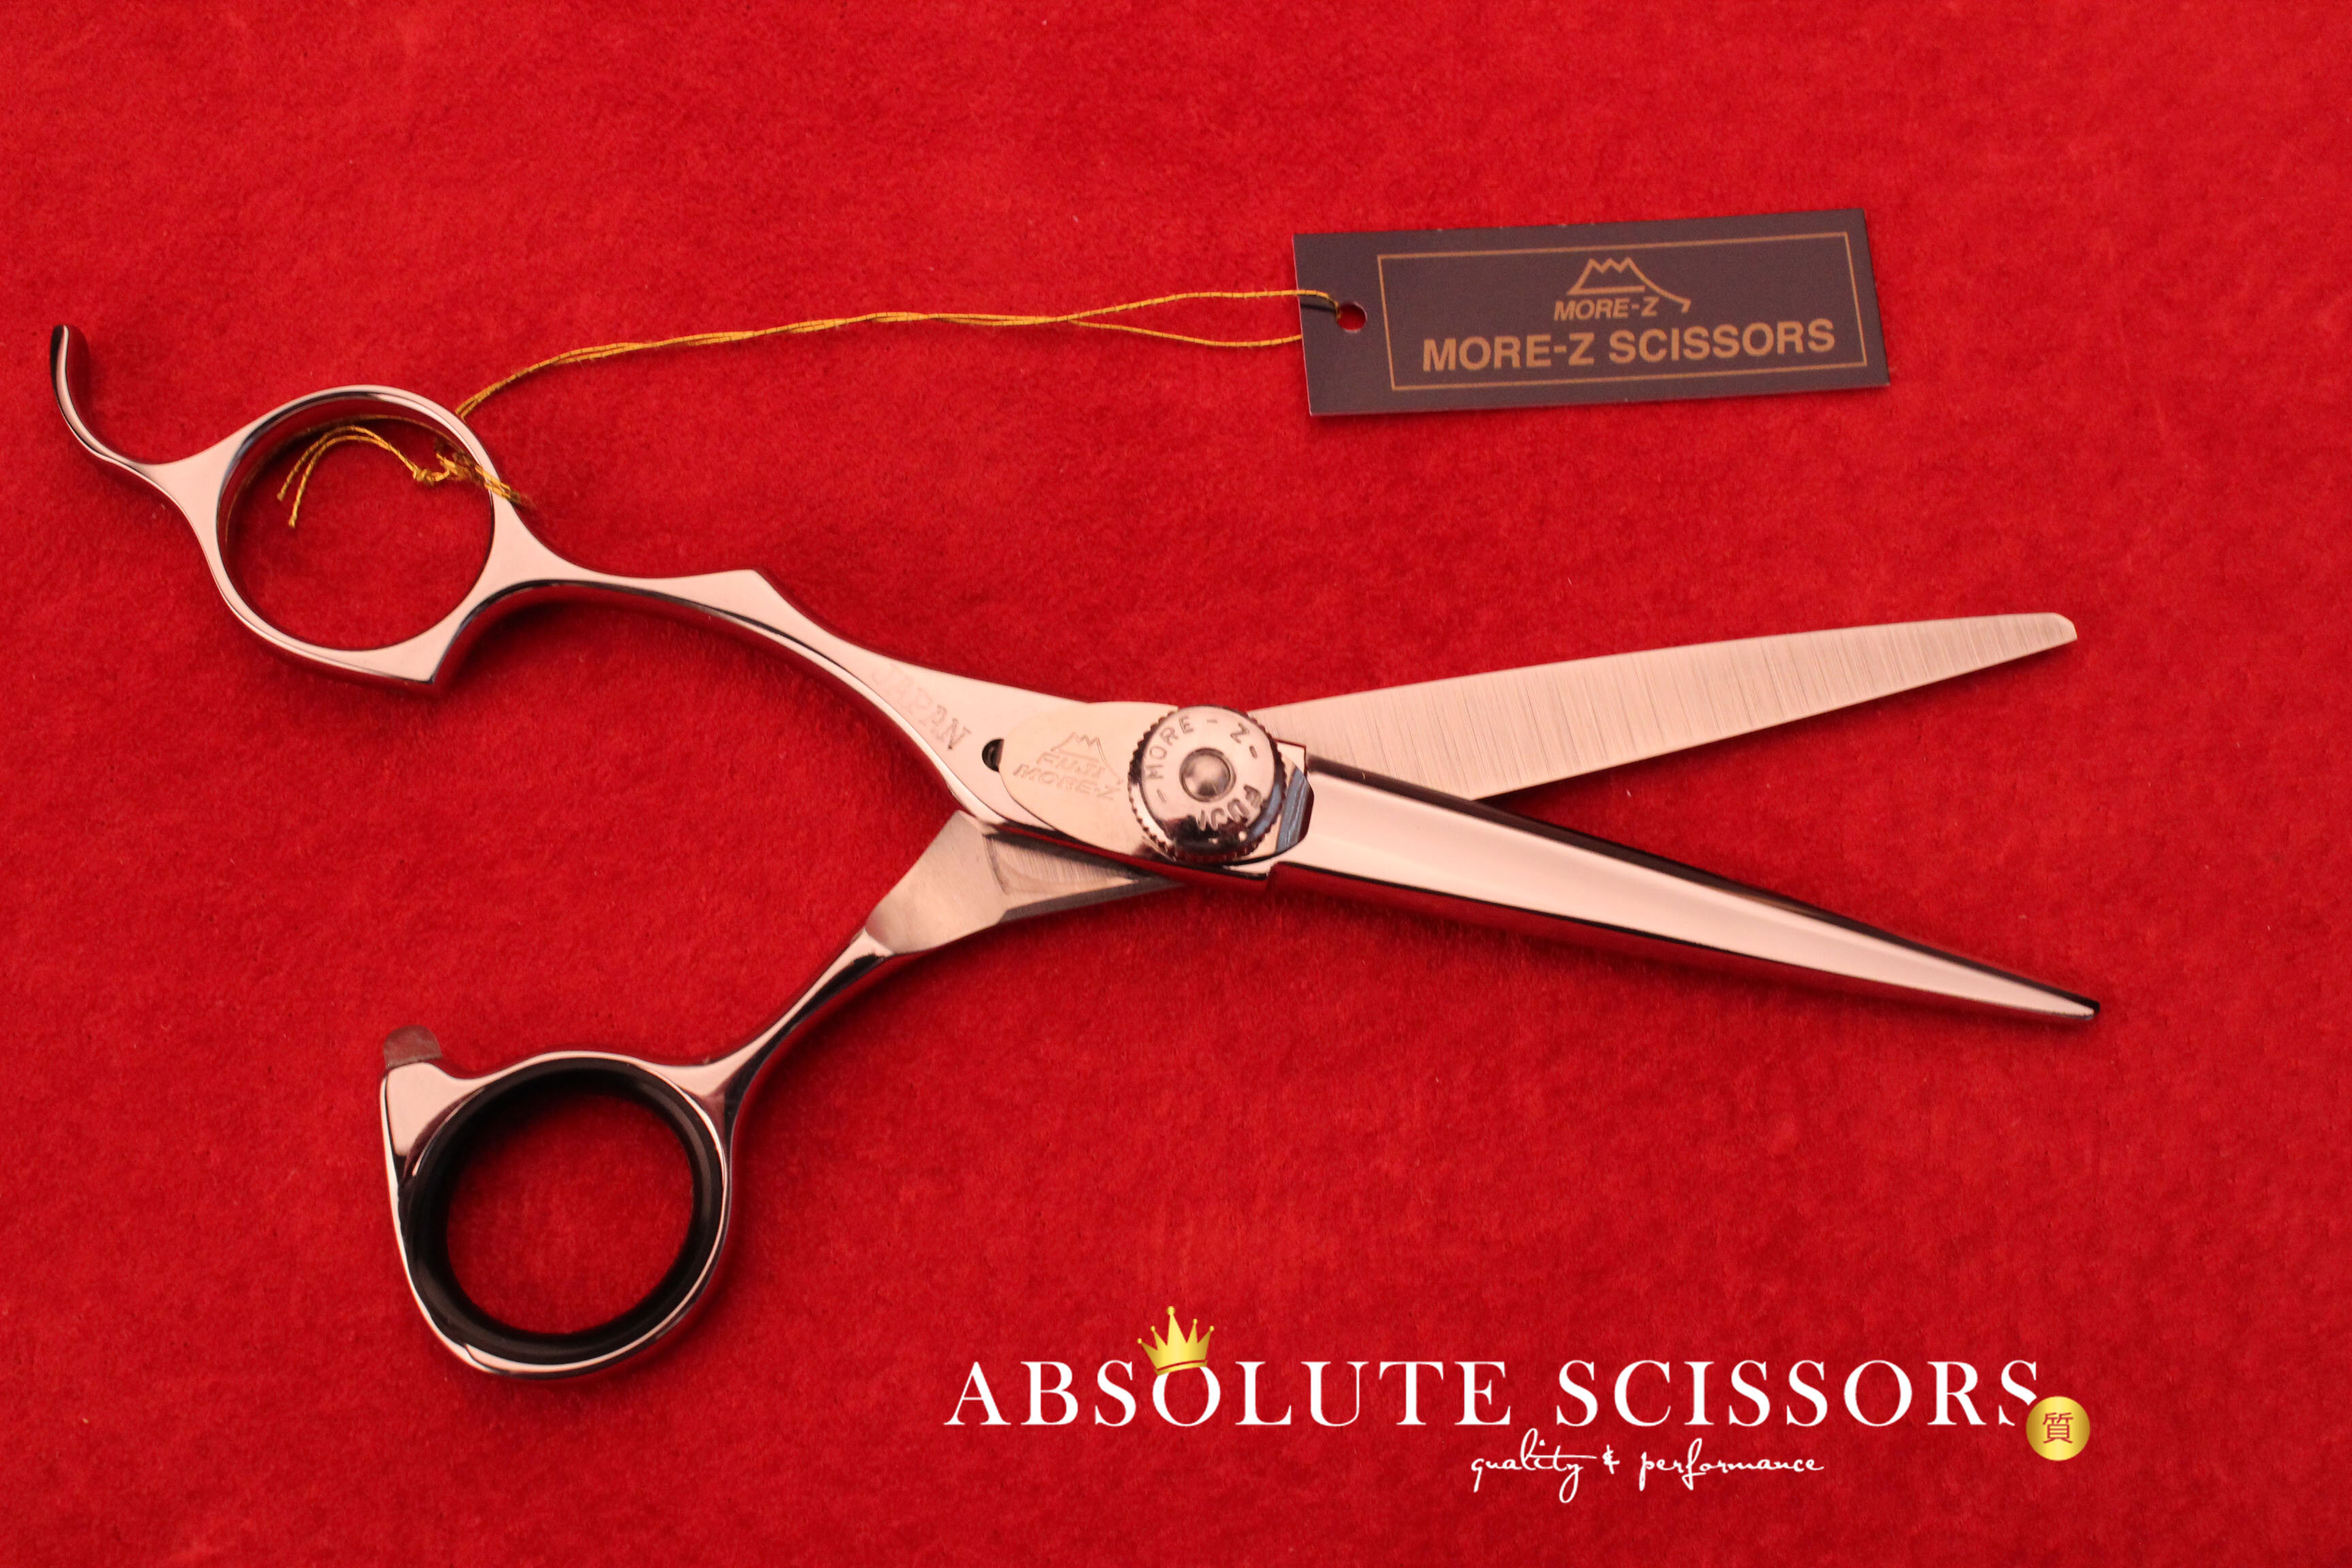 SF55 3579 Fuji Morez scissors shears